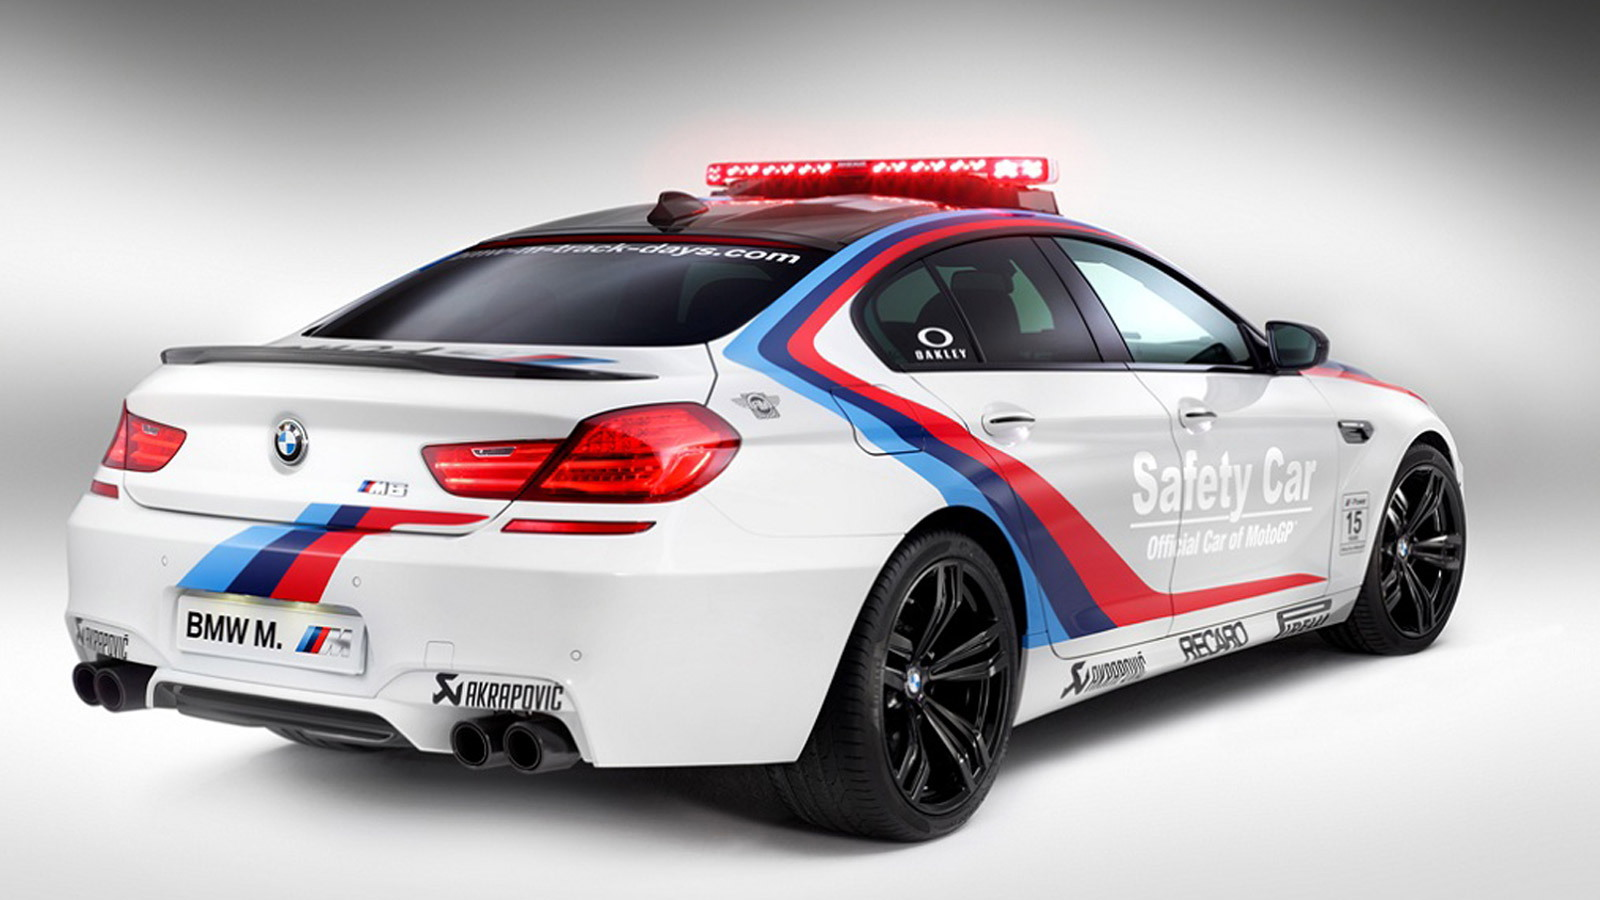 2014 BMW M6 Gran Coupe official safety car for MotoGP